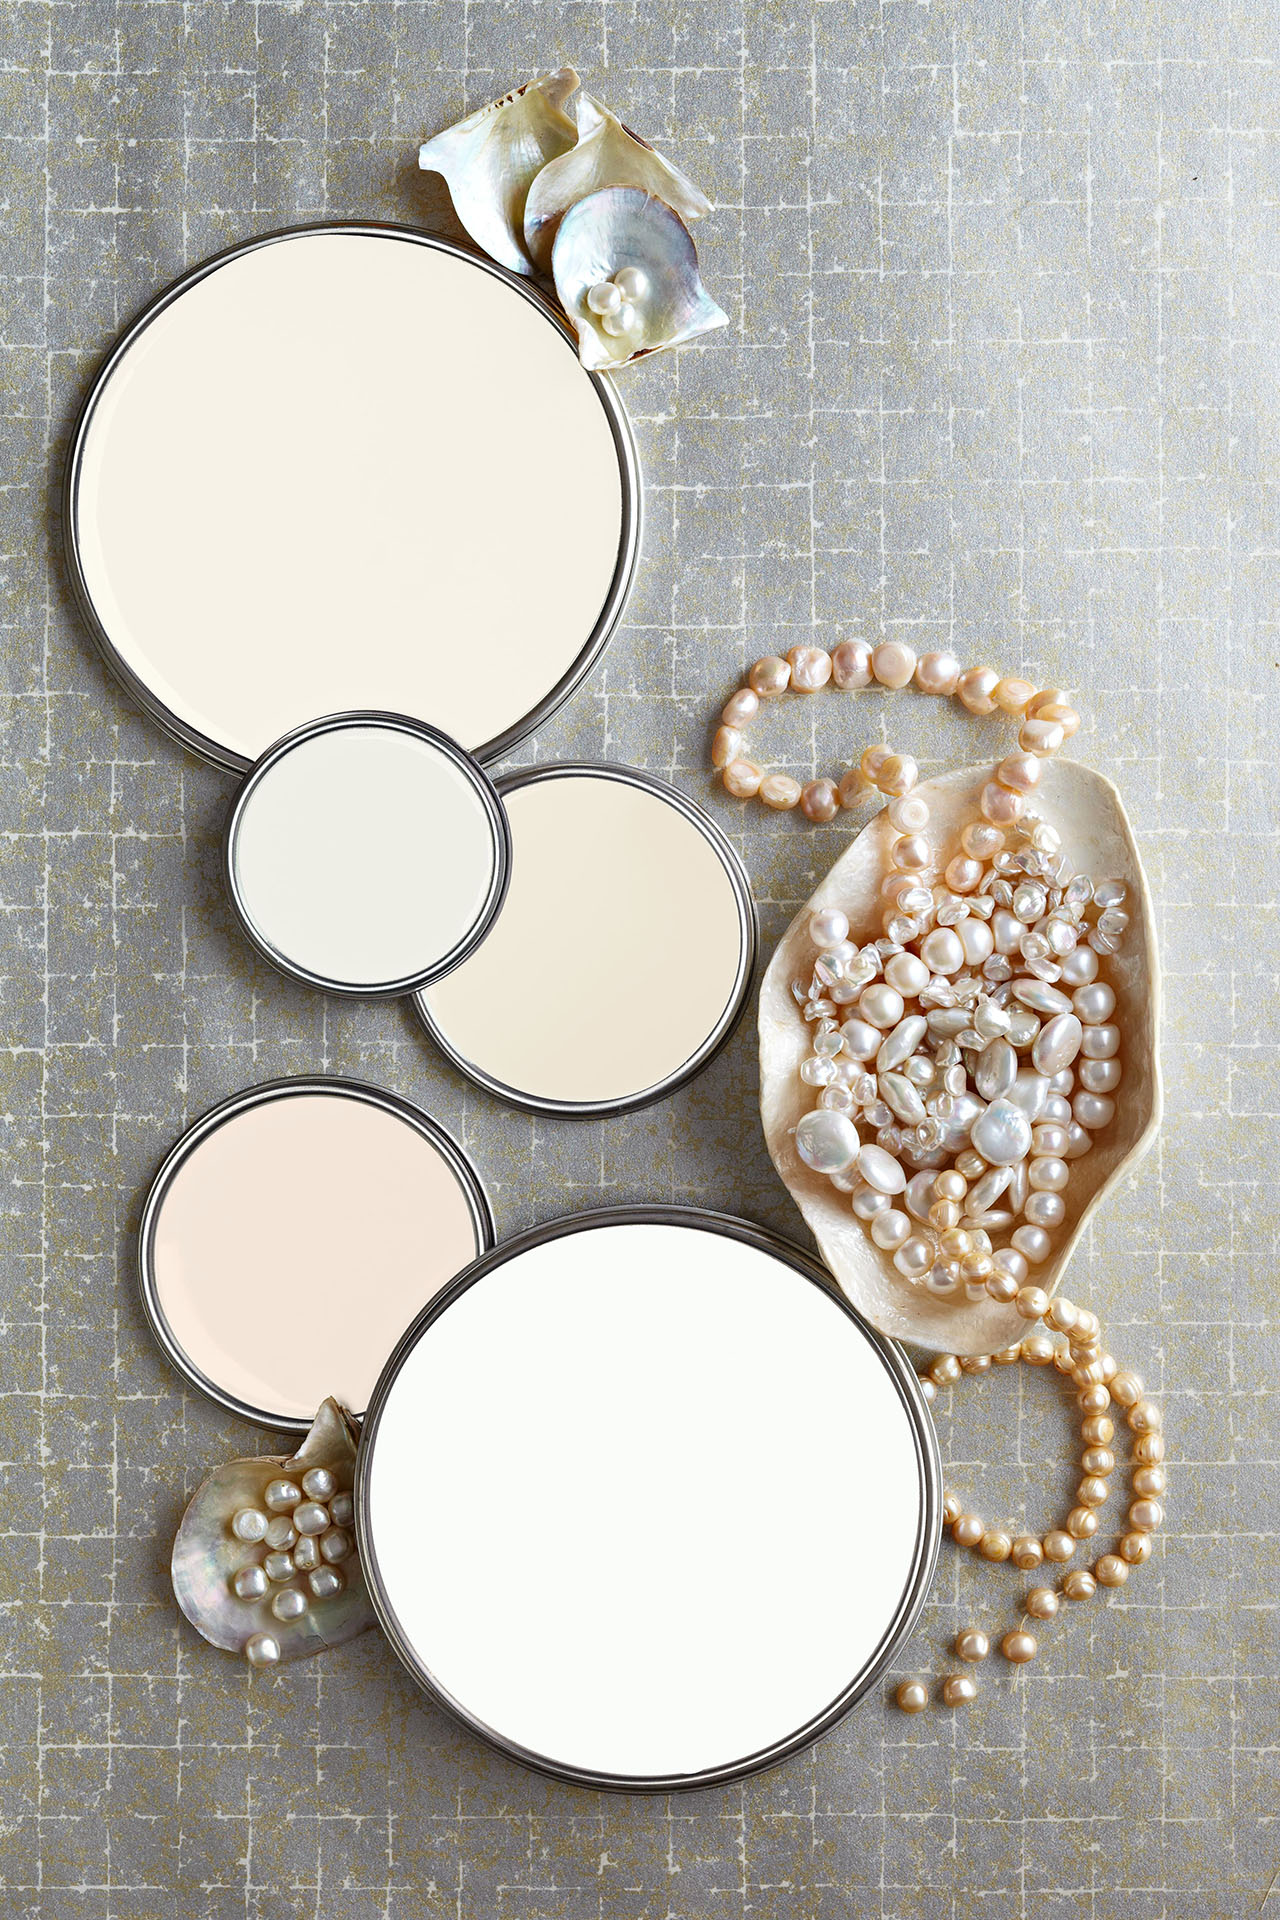 paint lids and pearls